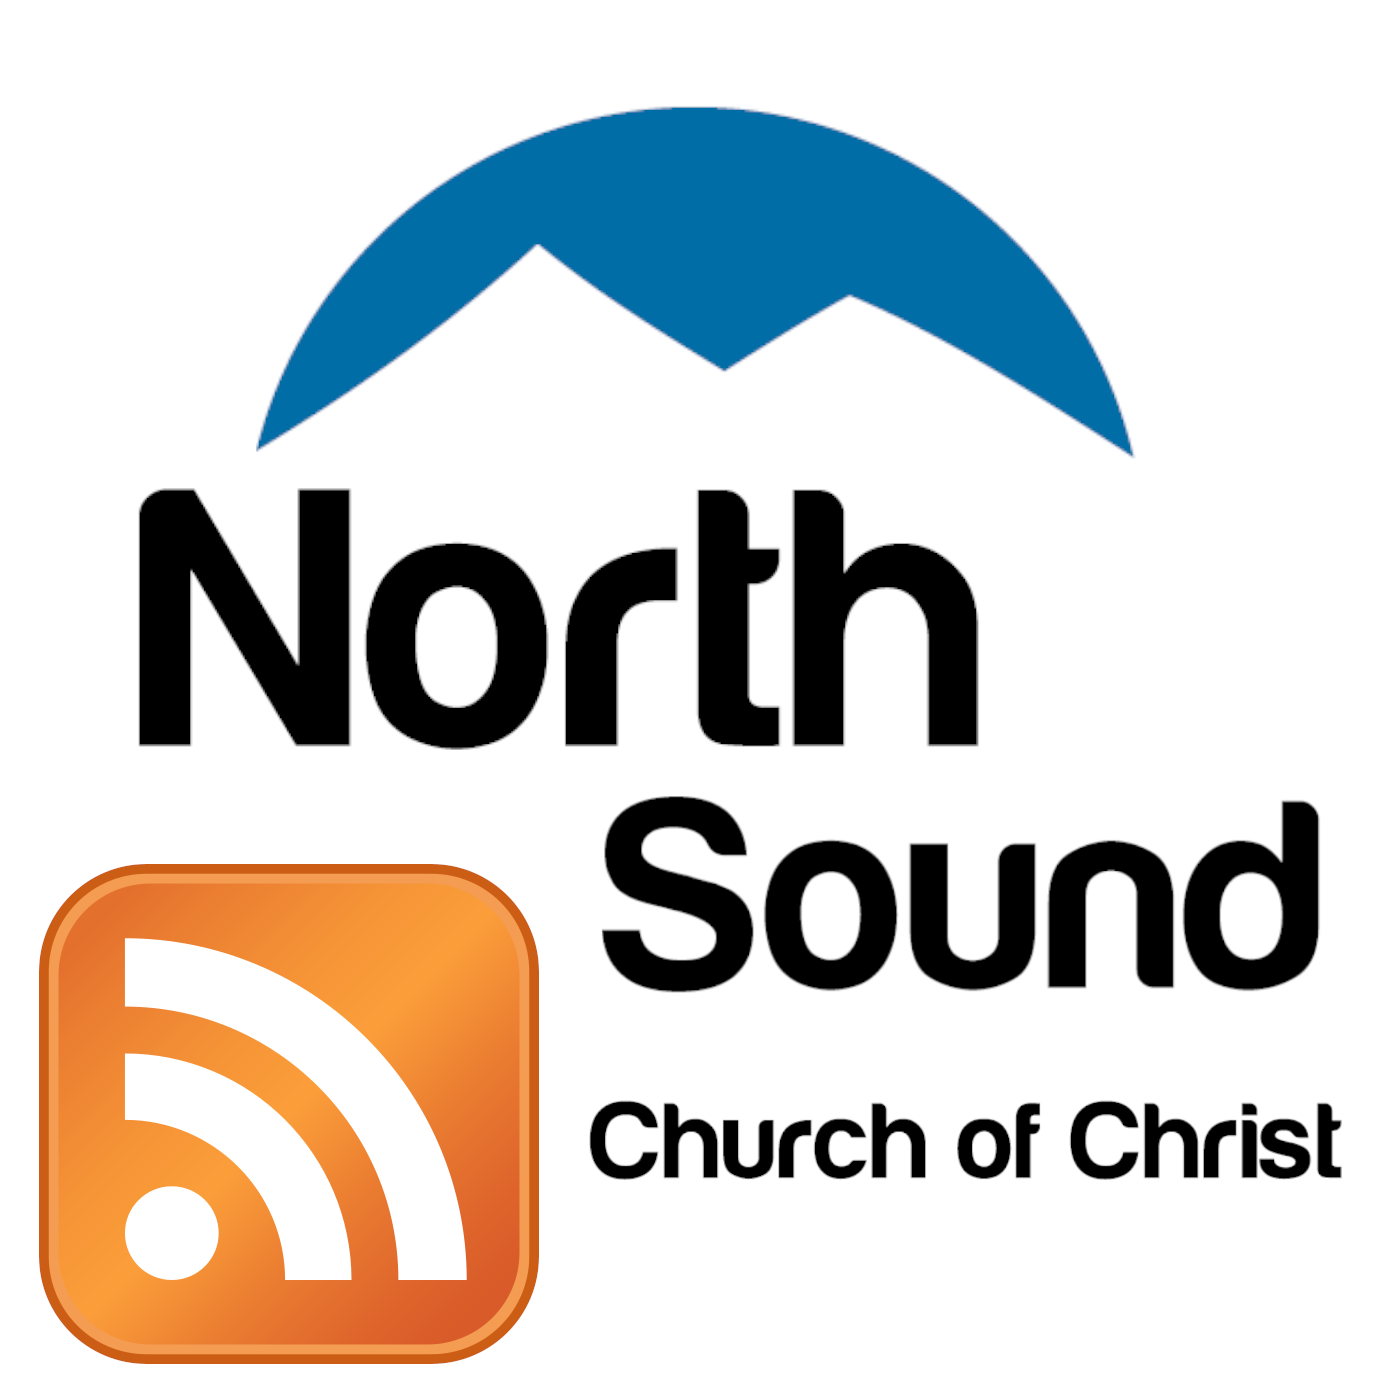 North Sound Church of Christ